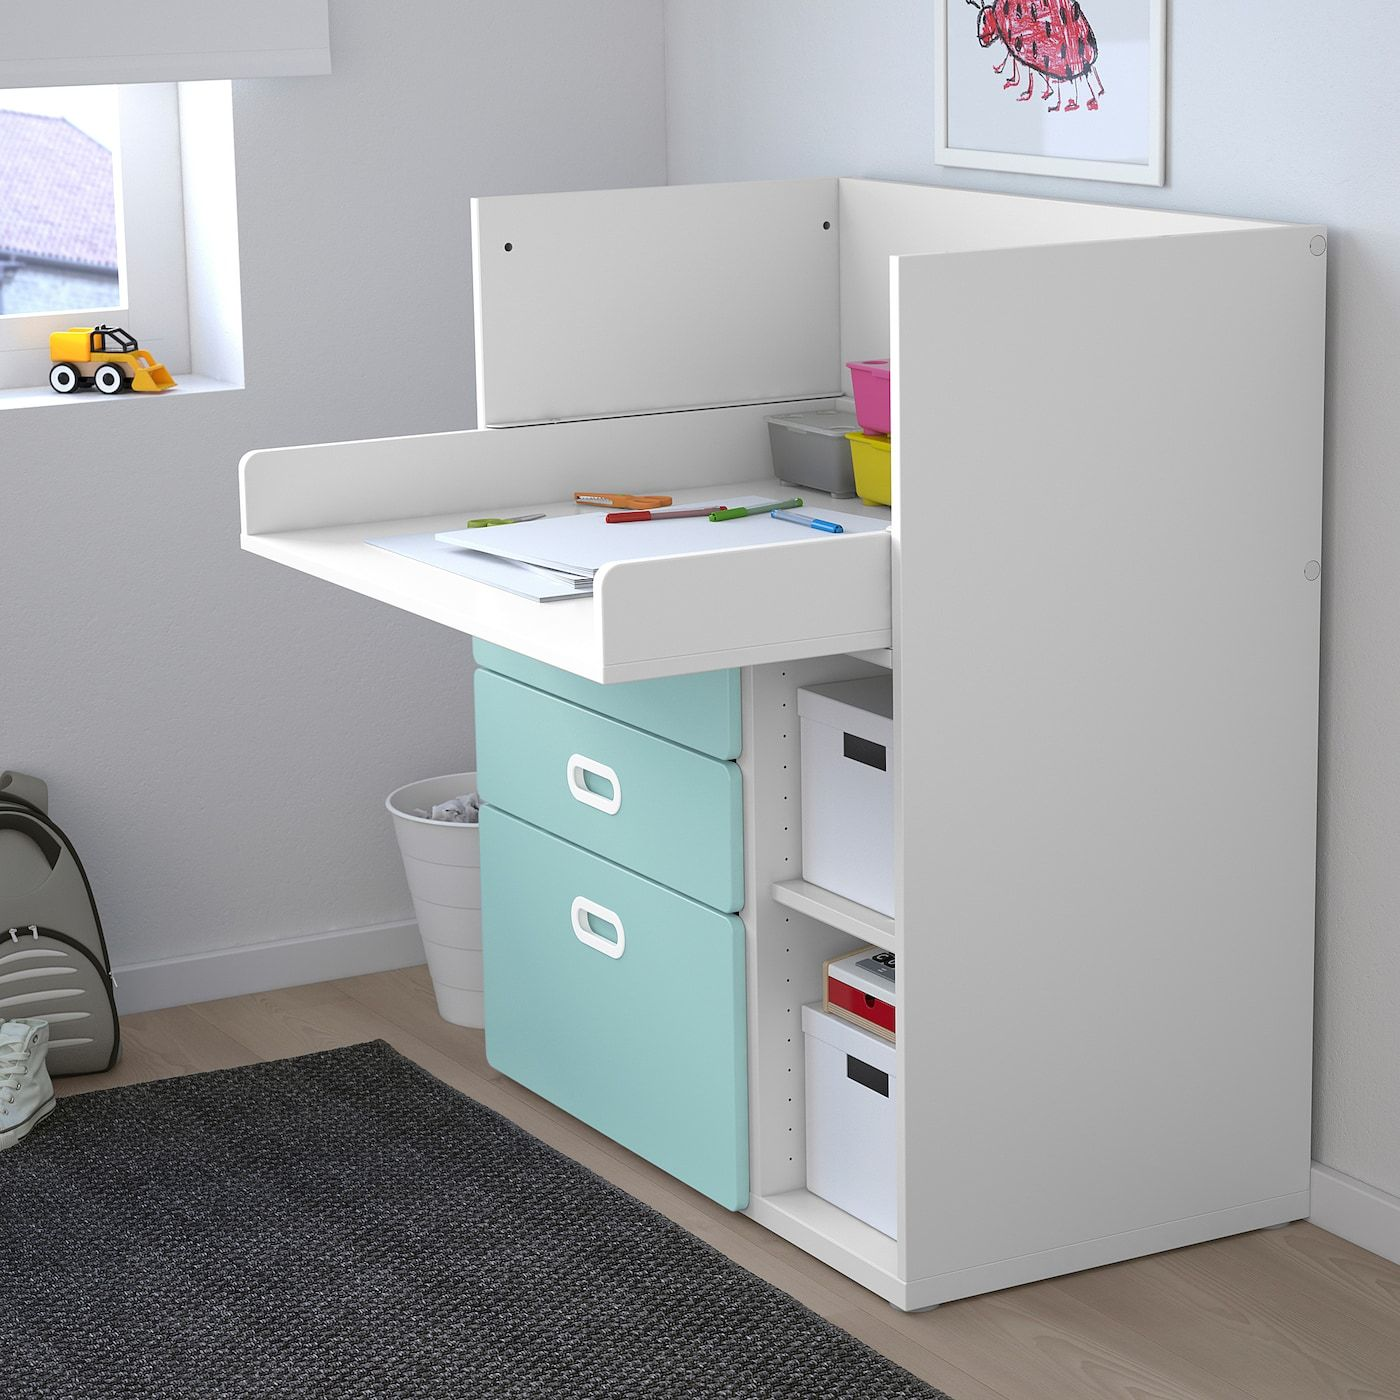 Stuva Fritids Changing Table With Drawers White Light Blue 35 3 8x31 1 8x40 1 8 In 2020 With Images Changing Table With Drawers Ikea Stuva White Changing Table